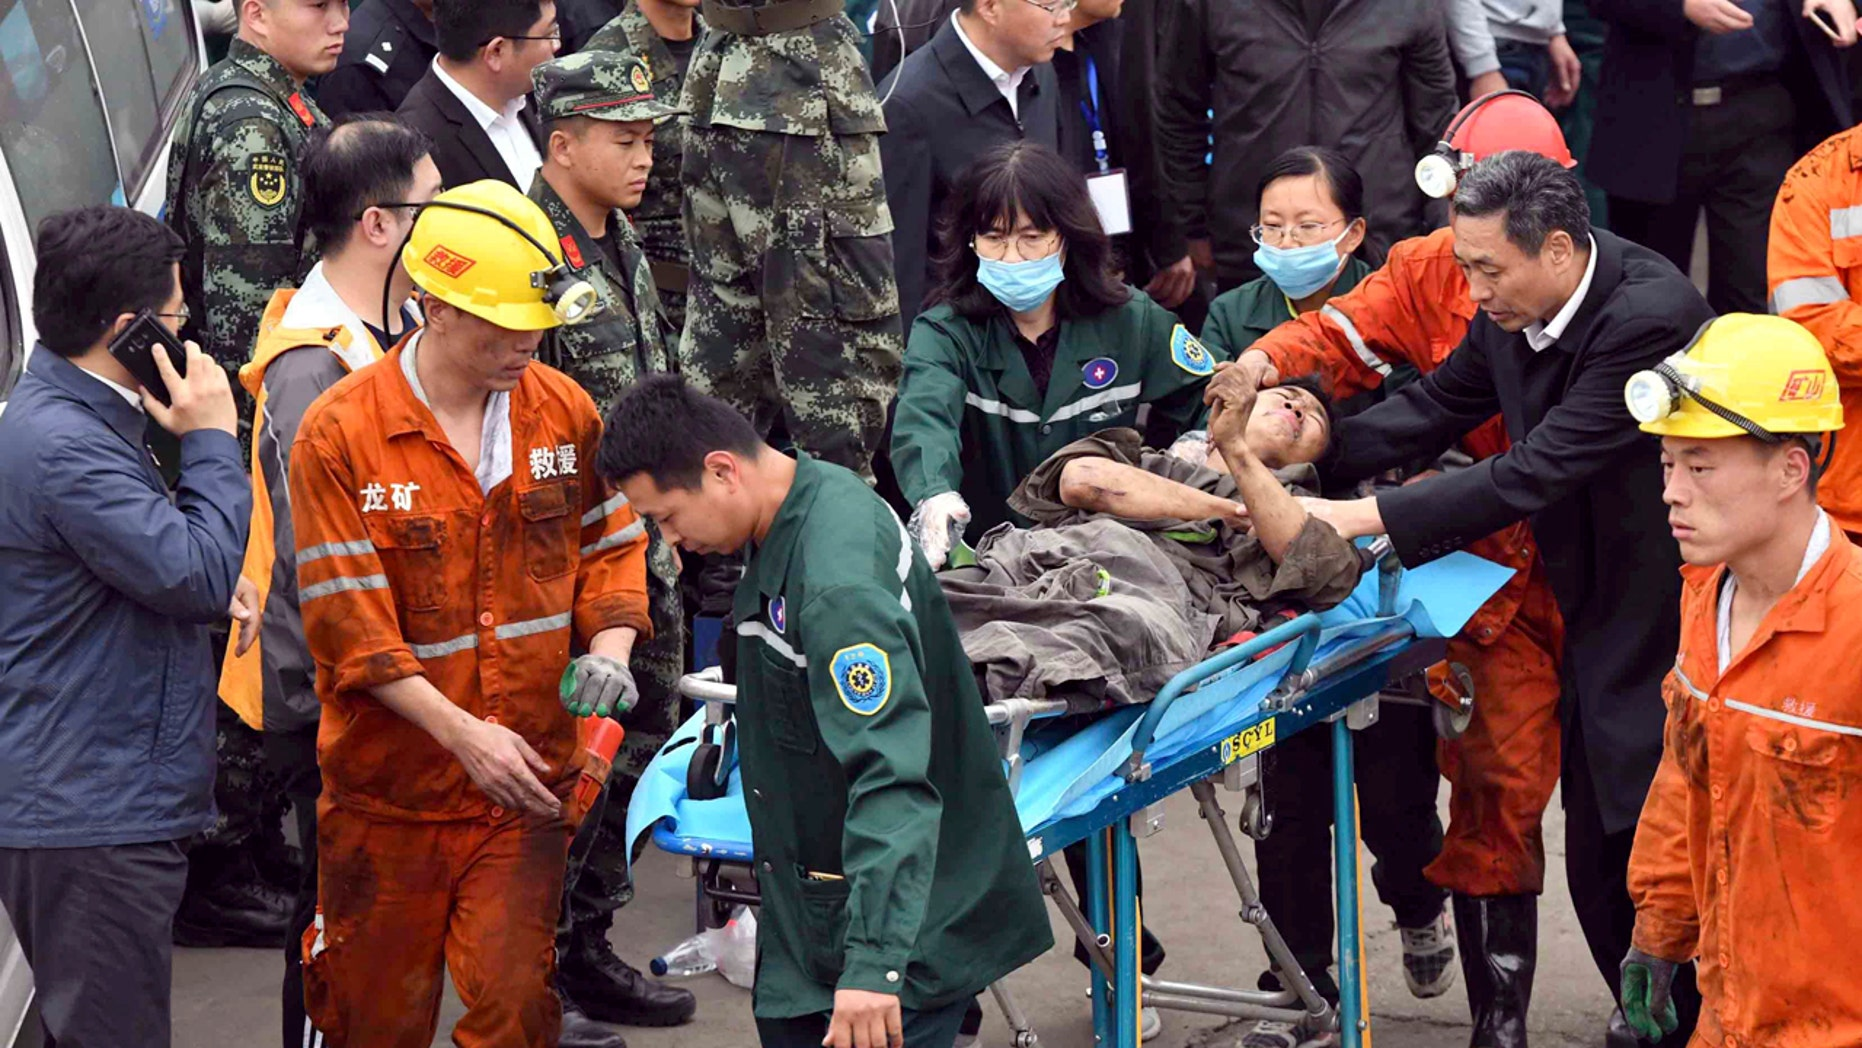 In this photo released by China's Xinhua News Agency, a worker is carried on a stretcher out of the Longyun coal mine in Yuncheng County, east China's Shandong Province, Sunday, Oct. 21, 2018.